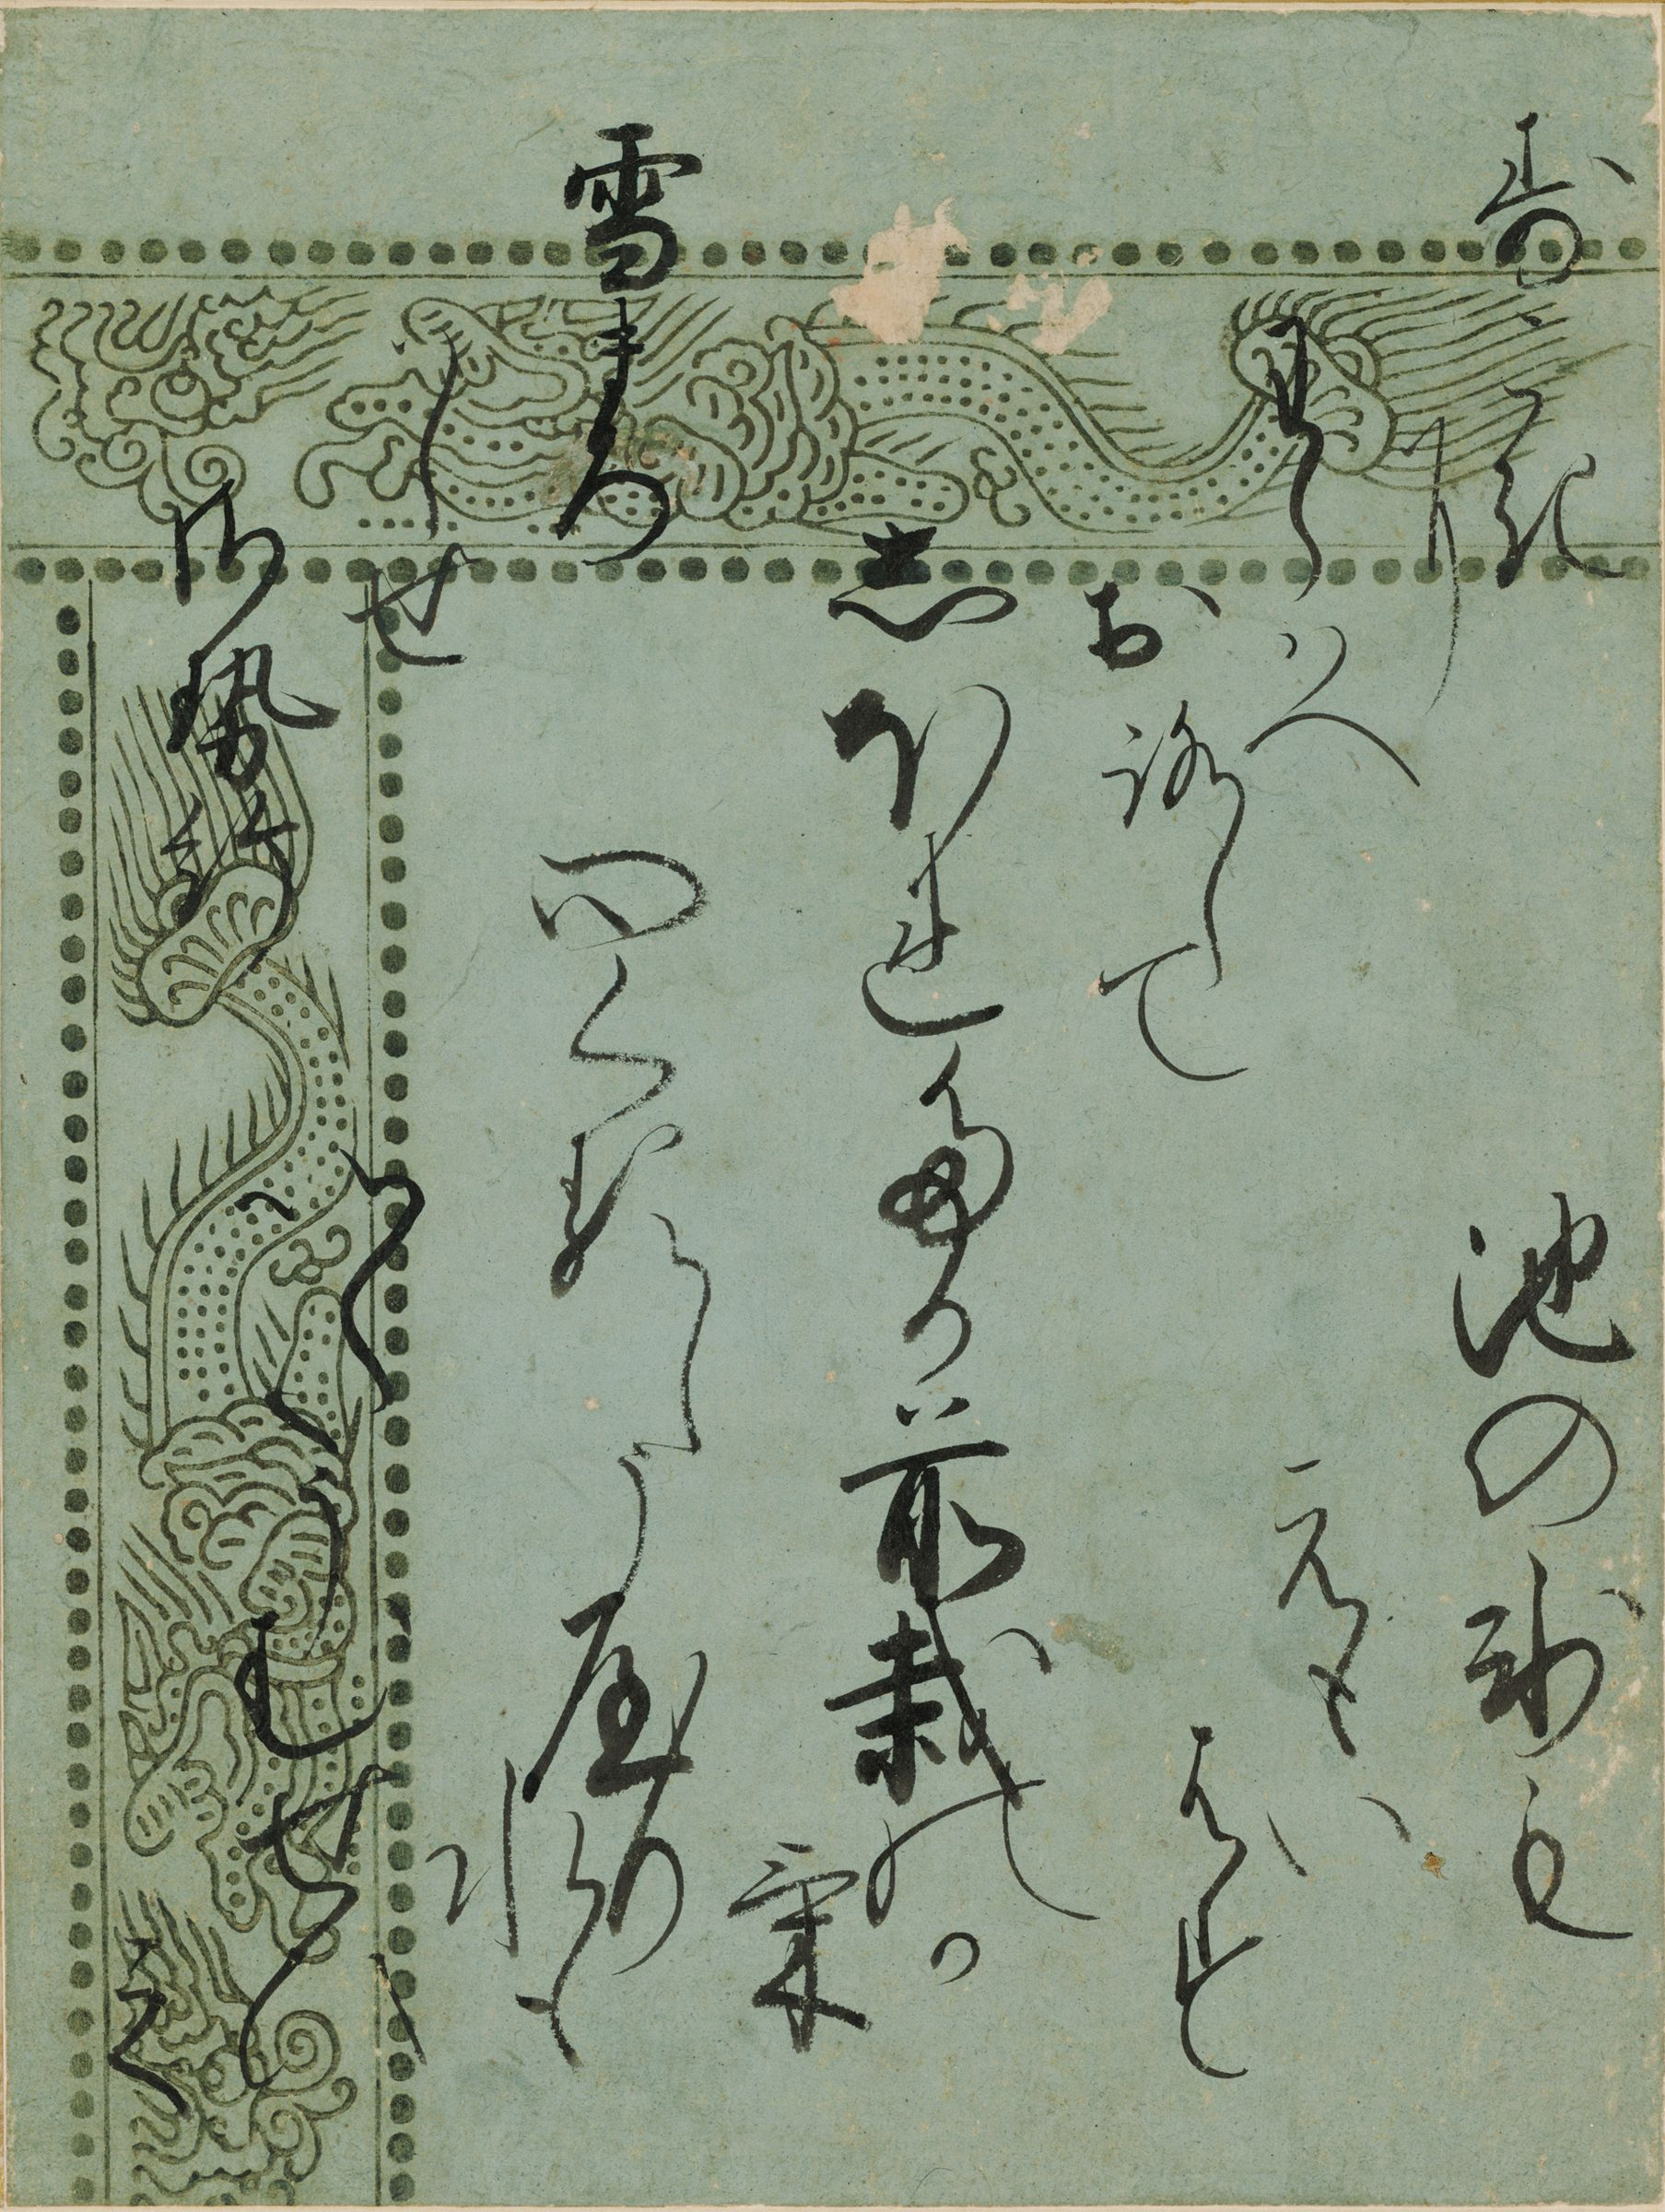 The Bluebell (Asagao), Calligraphic Excerpt From Chapter 20 Of The Tale Of Genji (Genji Monogatari)